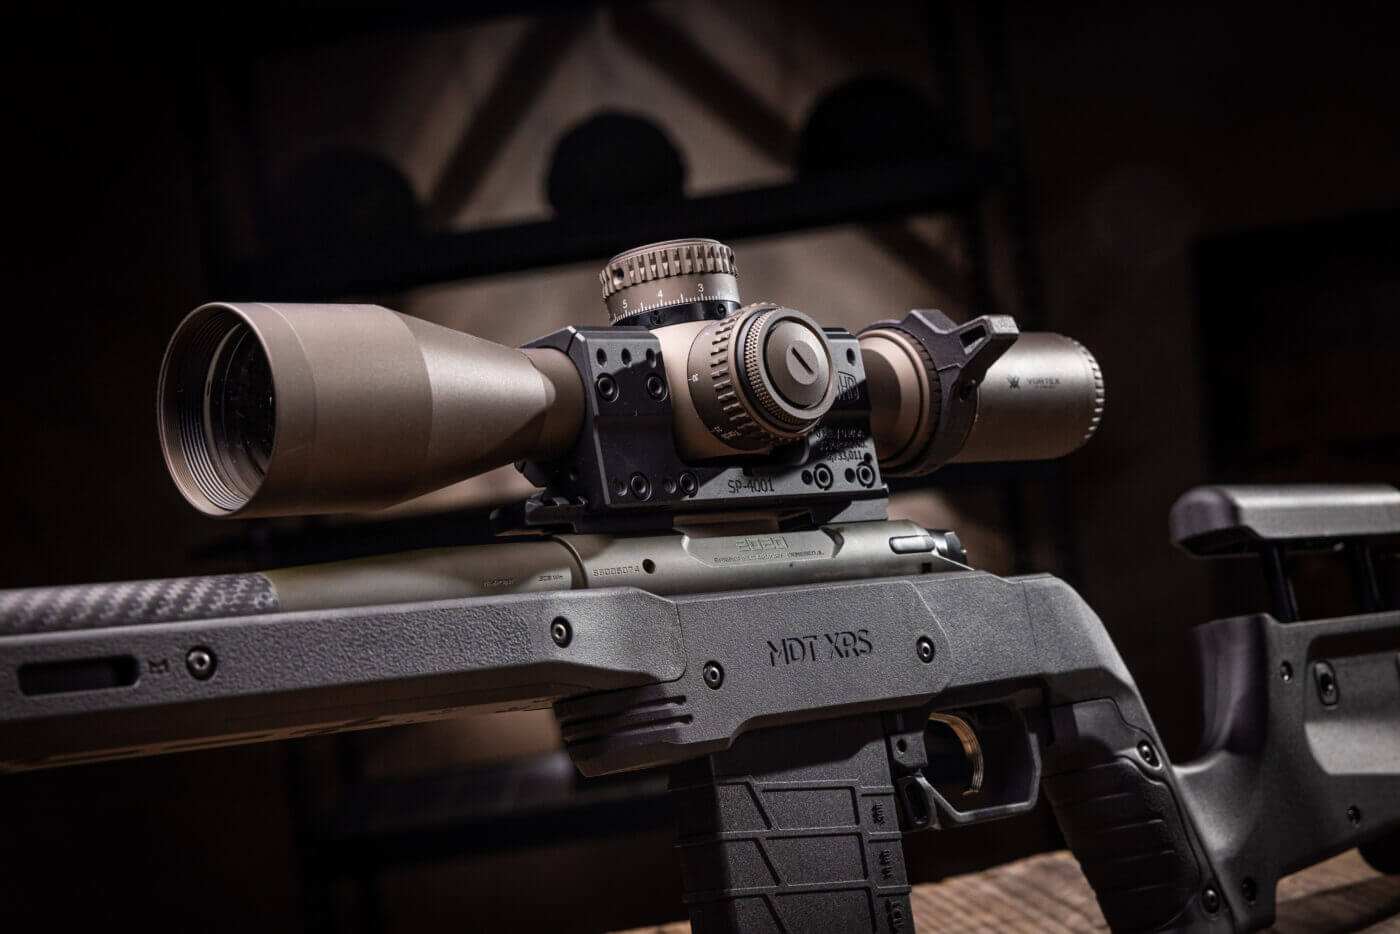 Virtex scope mounted on Springfield Armory Model 2020 Waypoint rifle in a MDT chassis